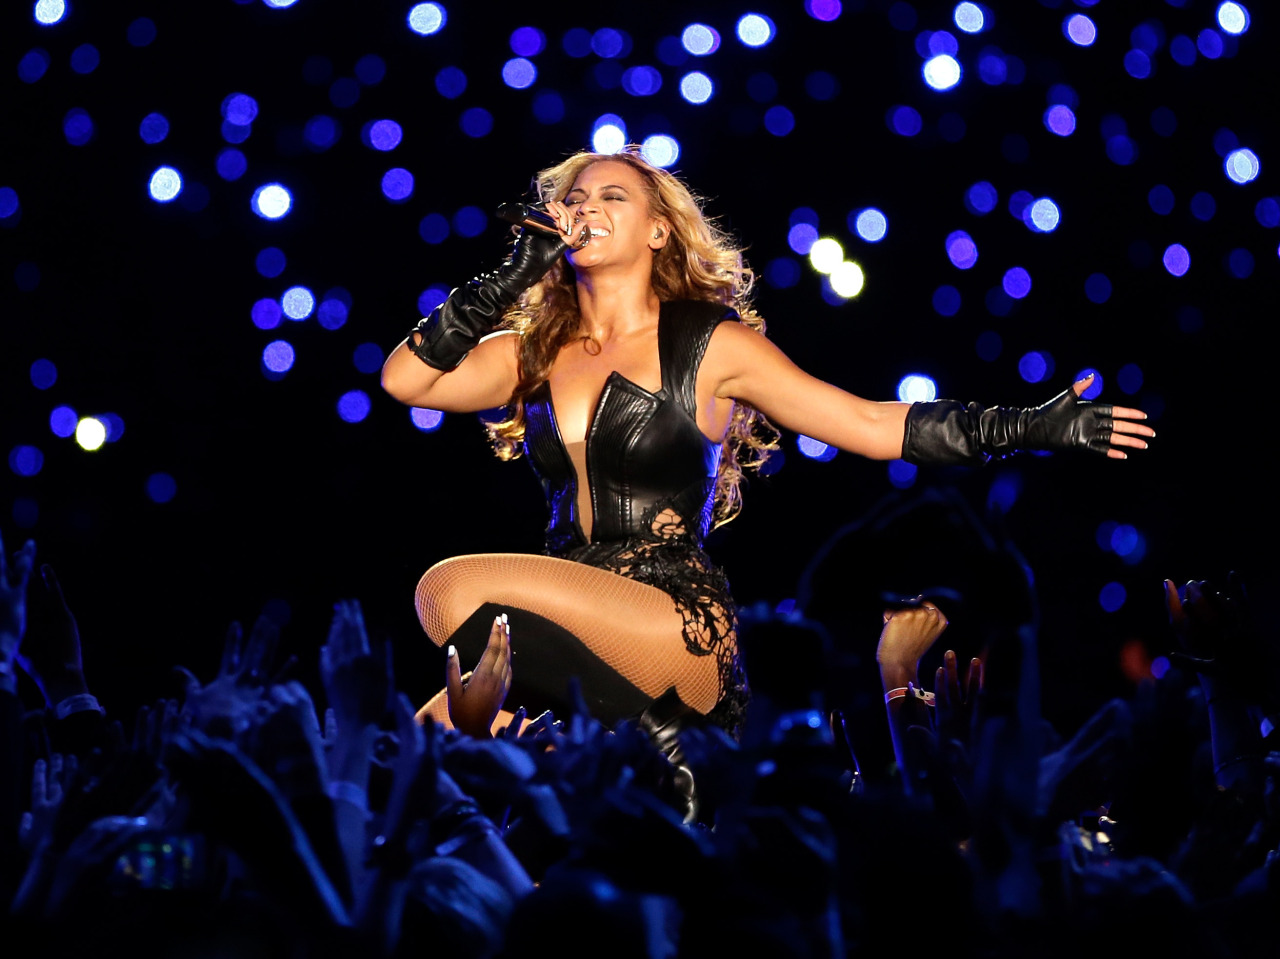 nprmusic:  Beyonce's display of imperial charisma at the Super Bowl comes off as an historical inevitability, and as something that benefits us all. Ann Powers says it's an illusion, but what a substantial one. Photo: Ezra Shaw/Getty Images  If you are going to read any piece on last nights flawless performance, read this one.